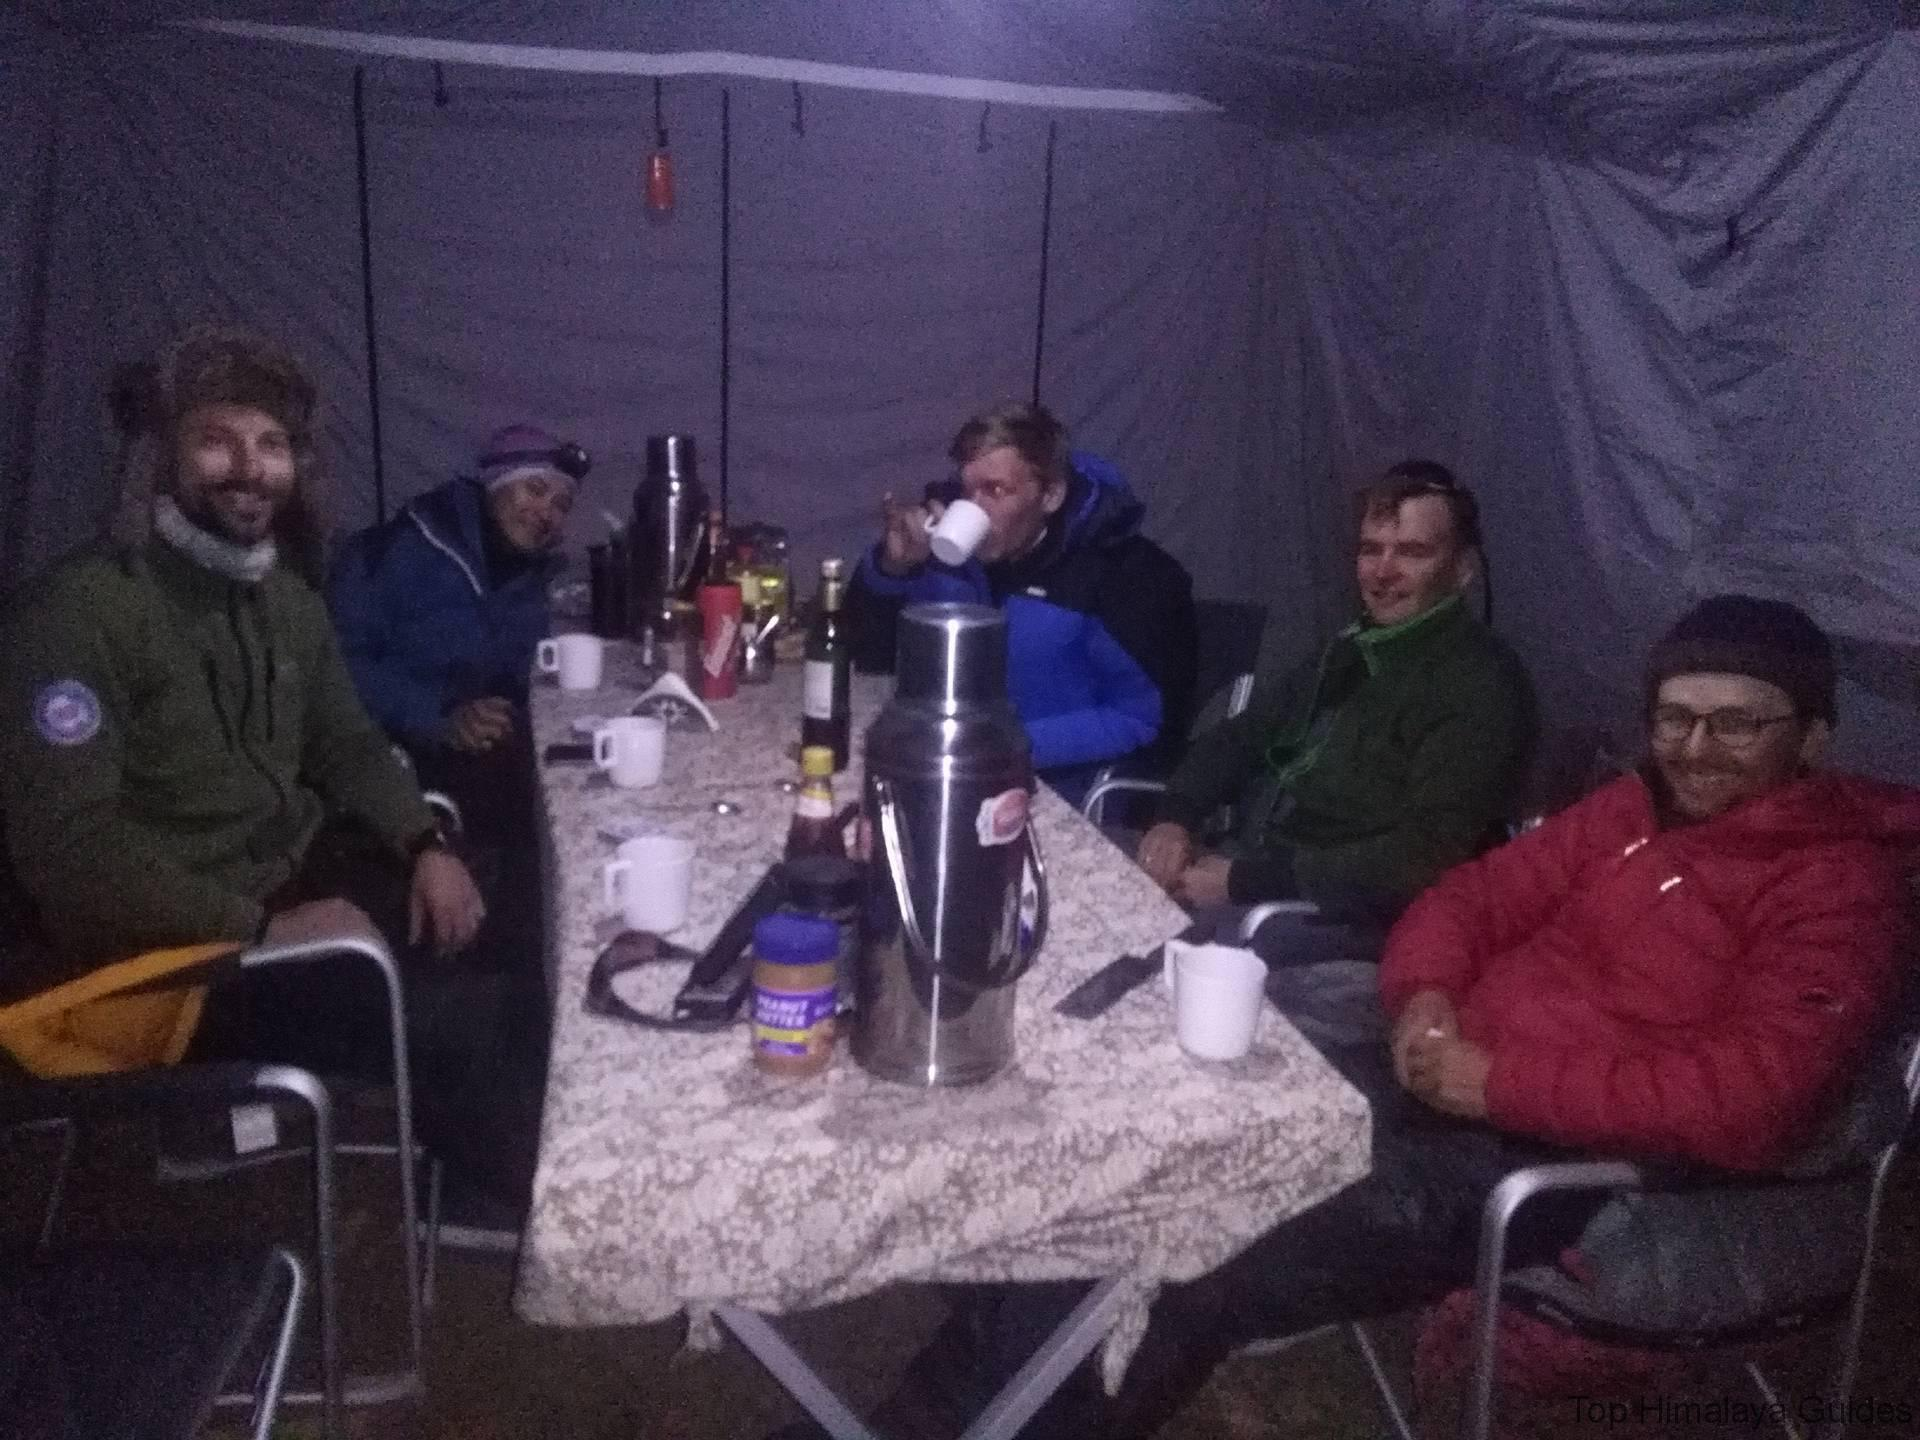 Top himalaya Guides Ama Dablam climbing expedition 2016 team are Enjoying wine at Ama Dablam base camp